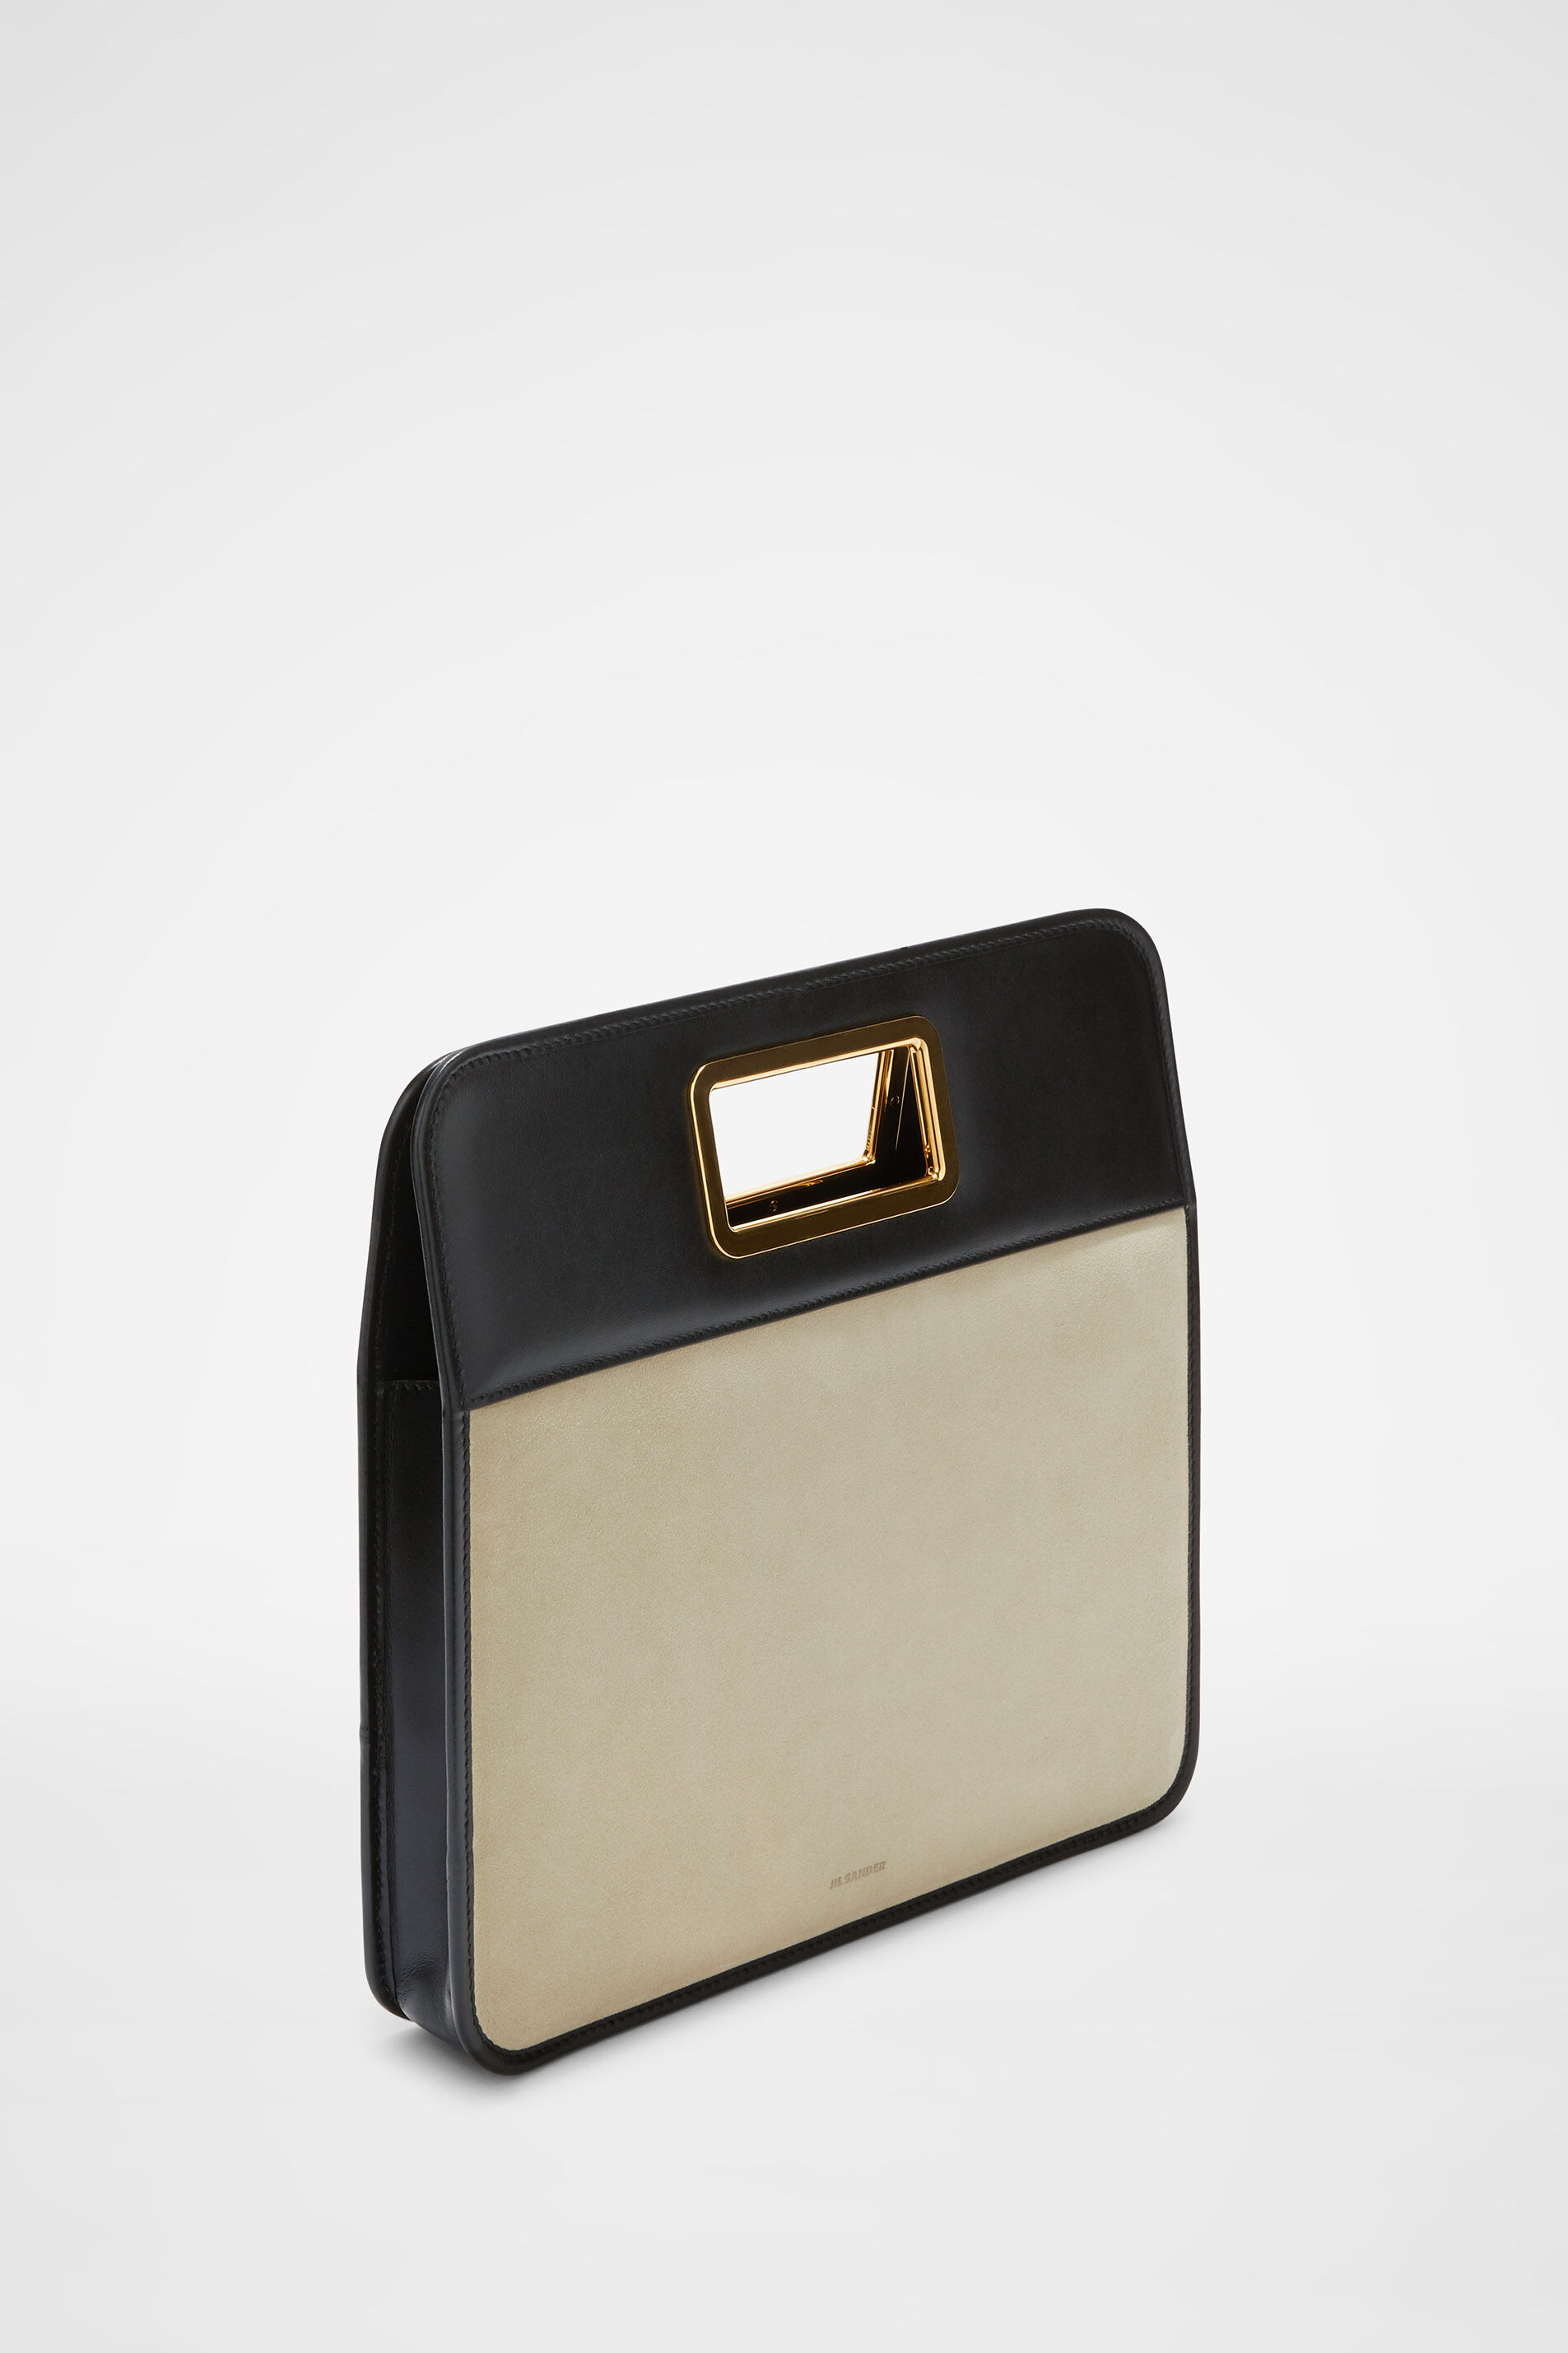 Square Handle Clutch, beige, large